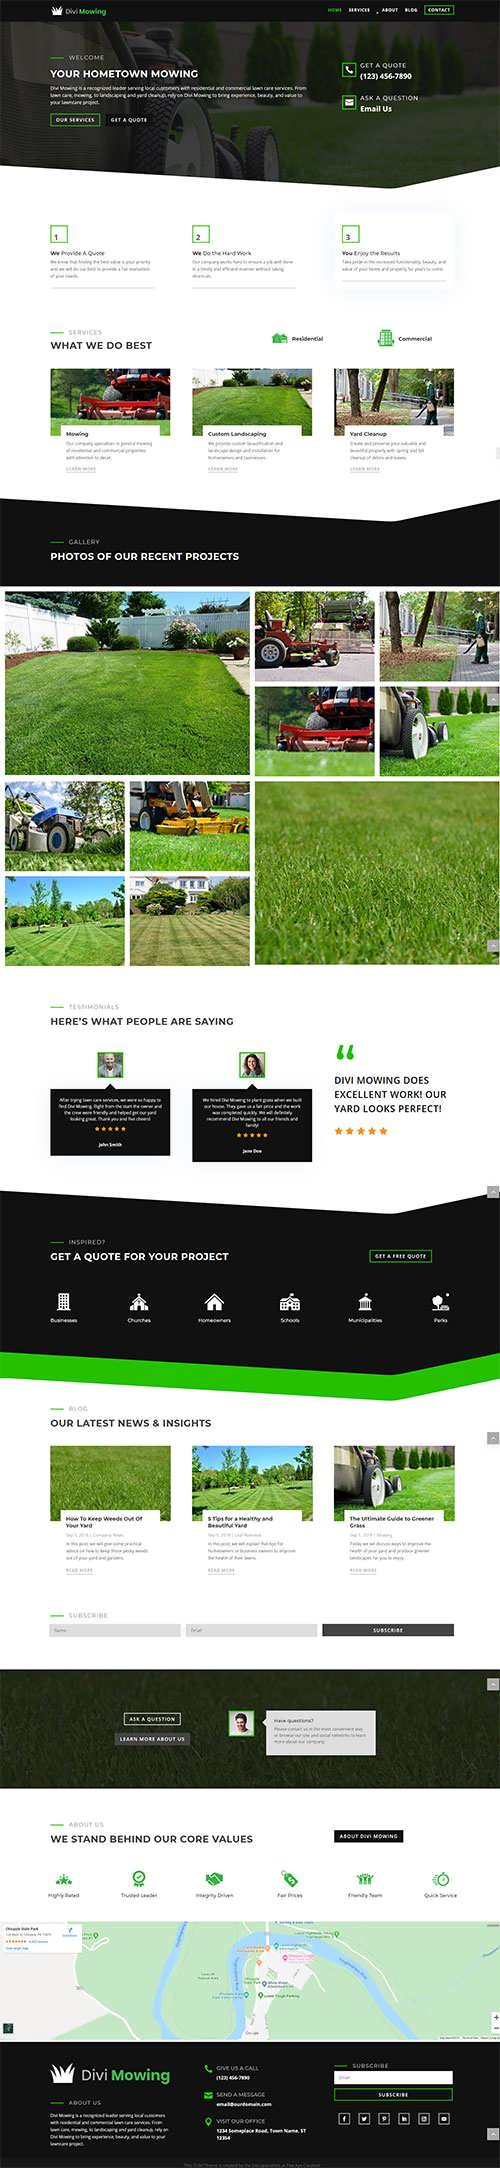 Divi Mowing Child Theme